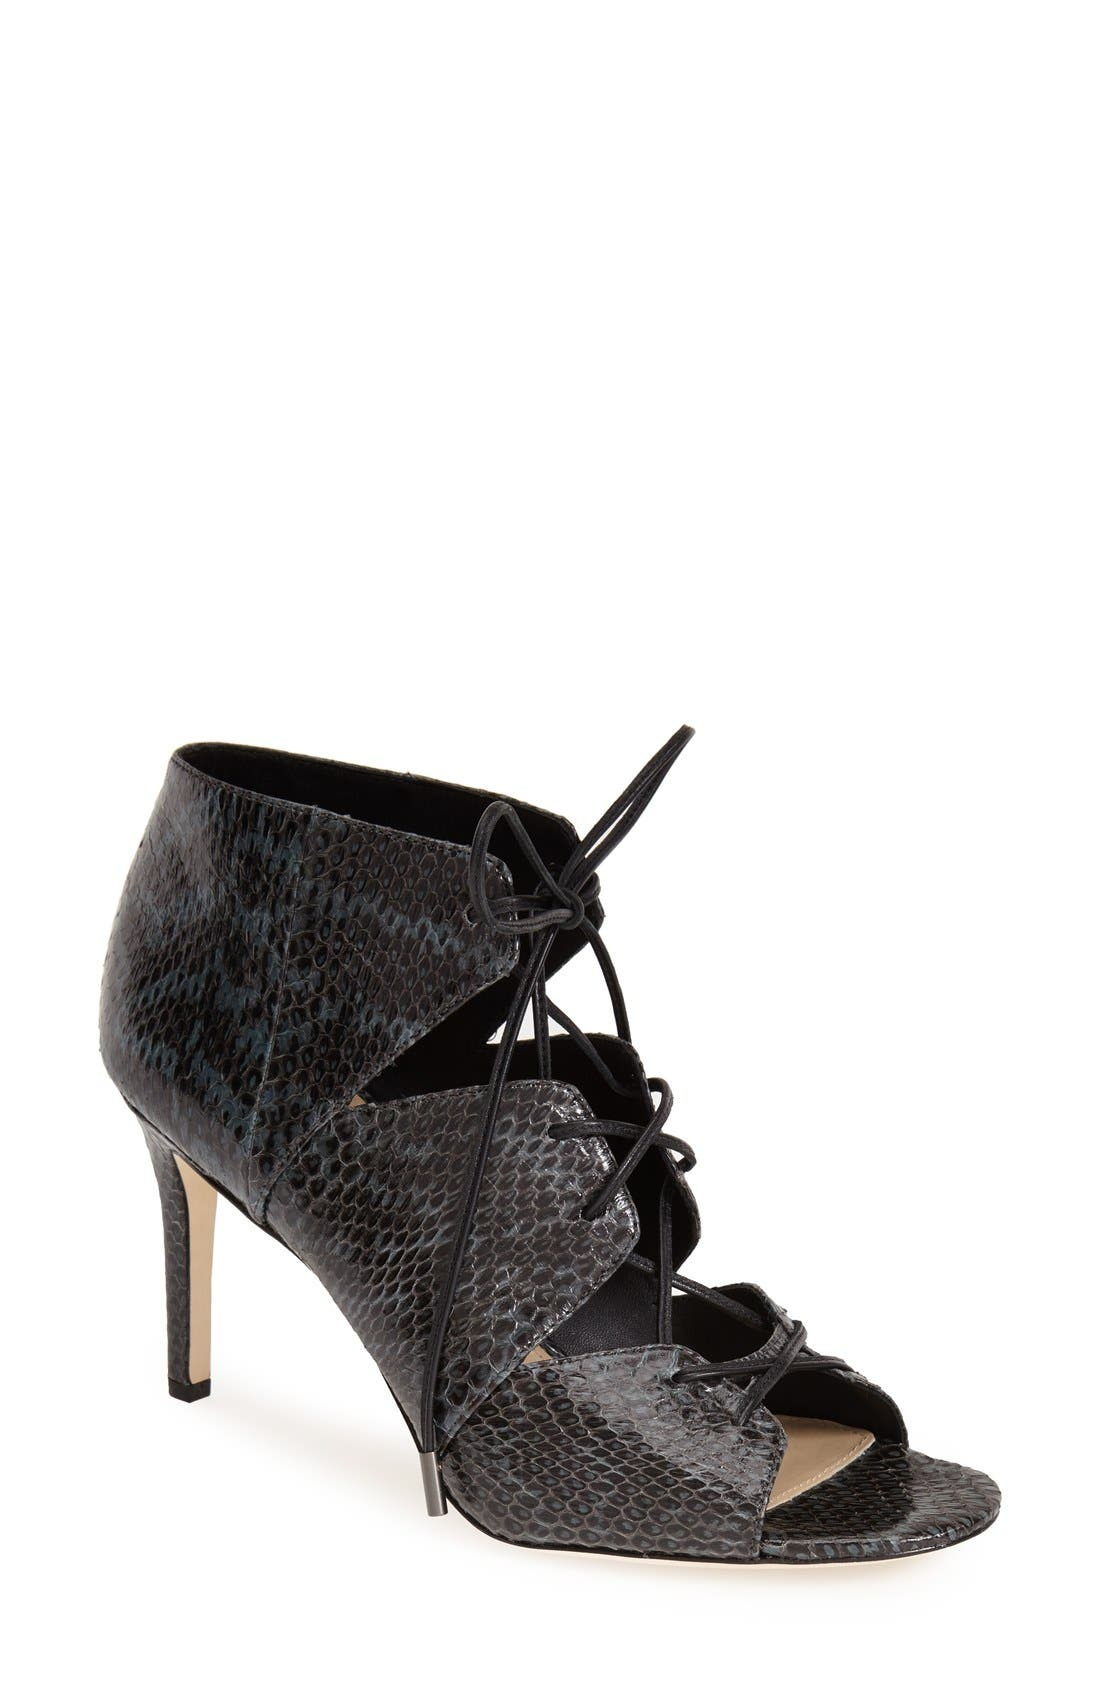 Alternate Image 1 Selected - Via Spiga 'Vibe' Lace-Up Pump (Women)